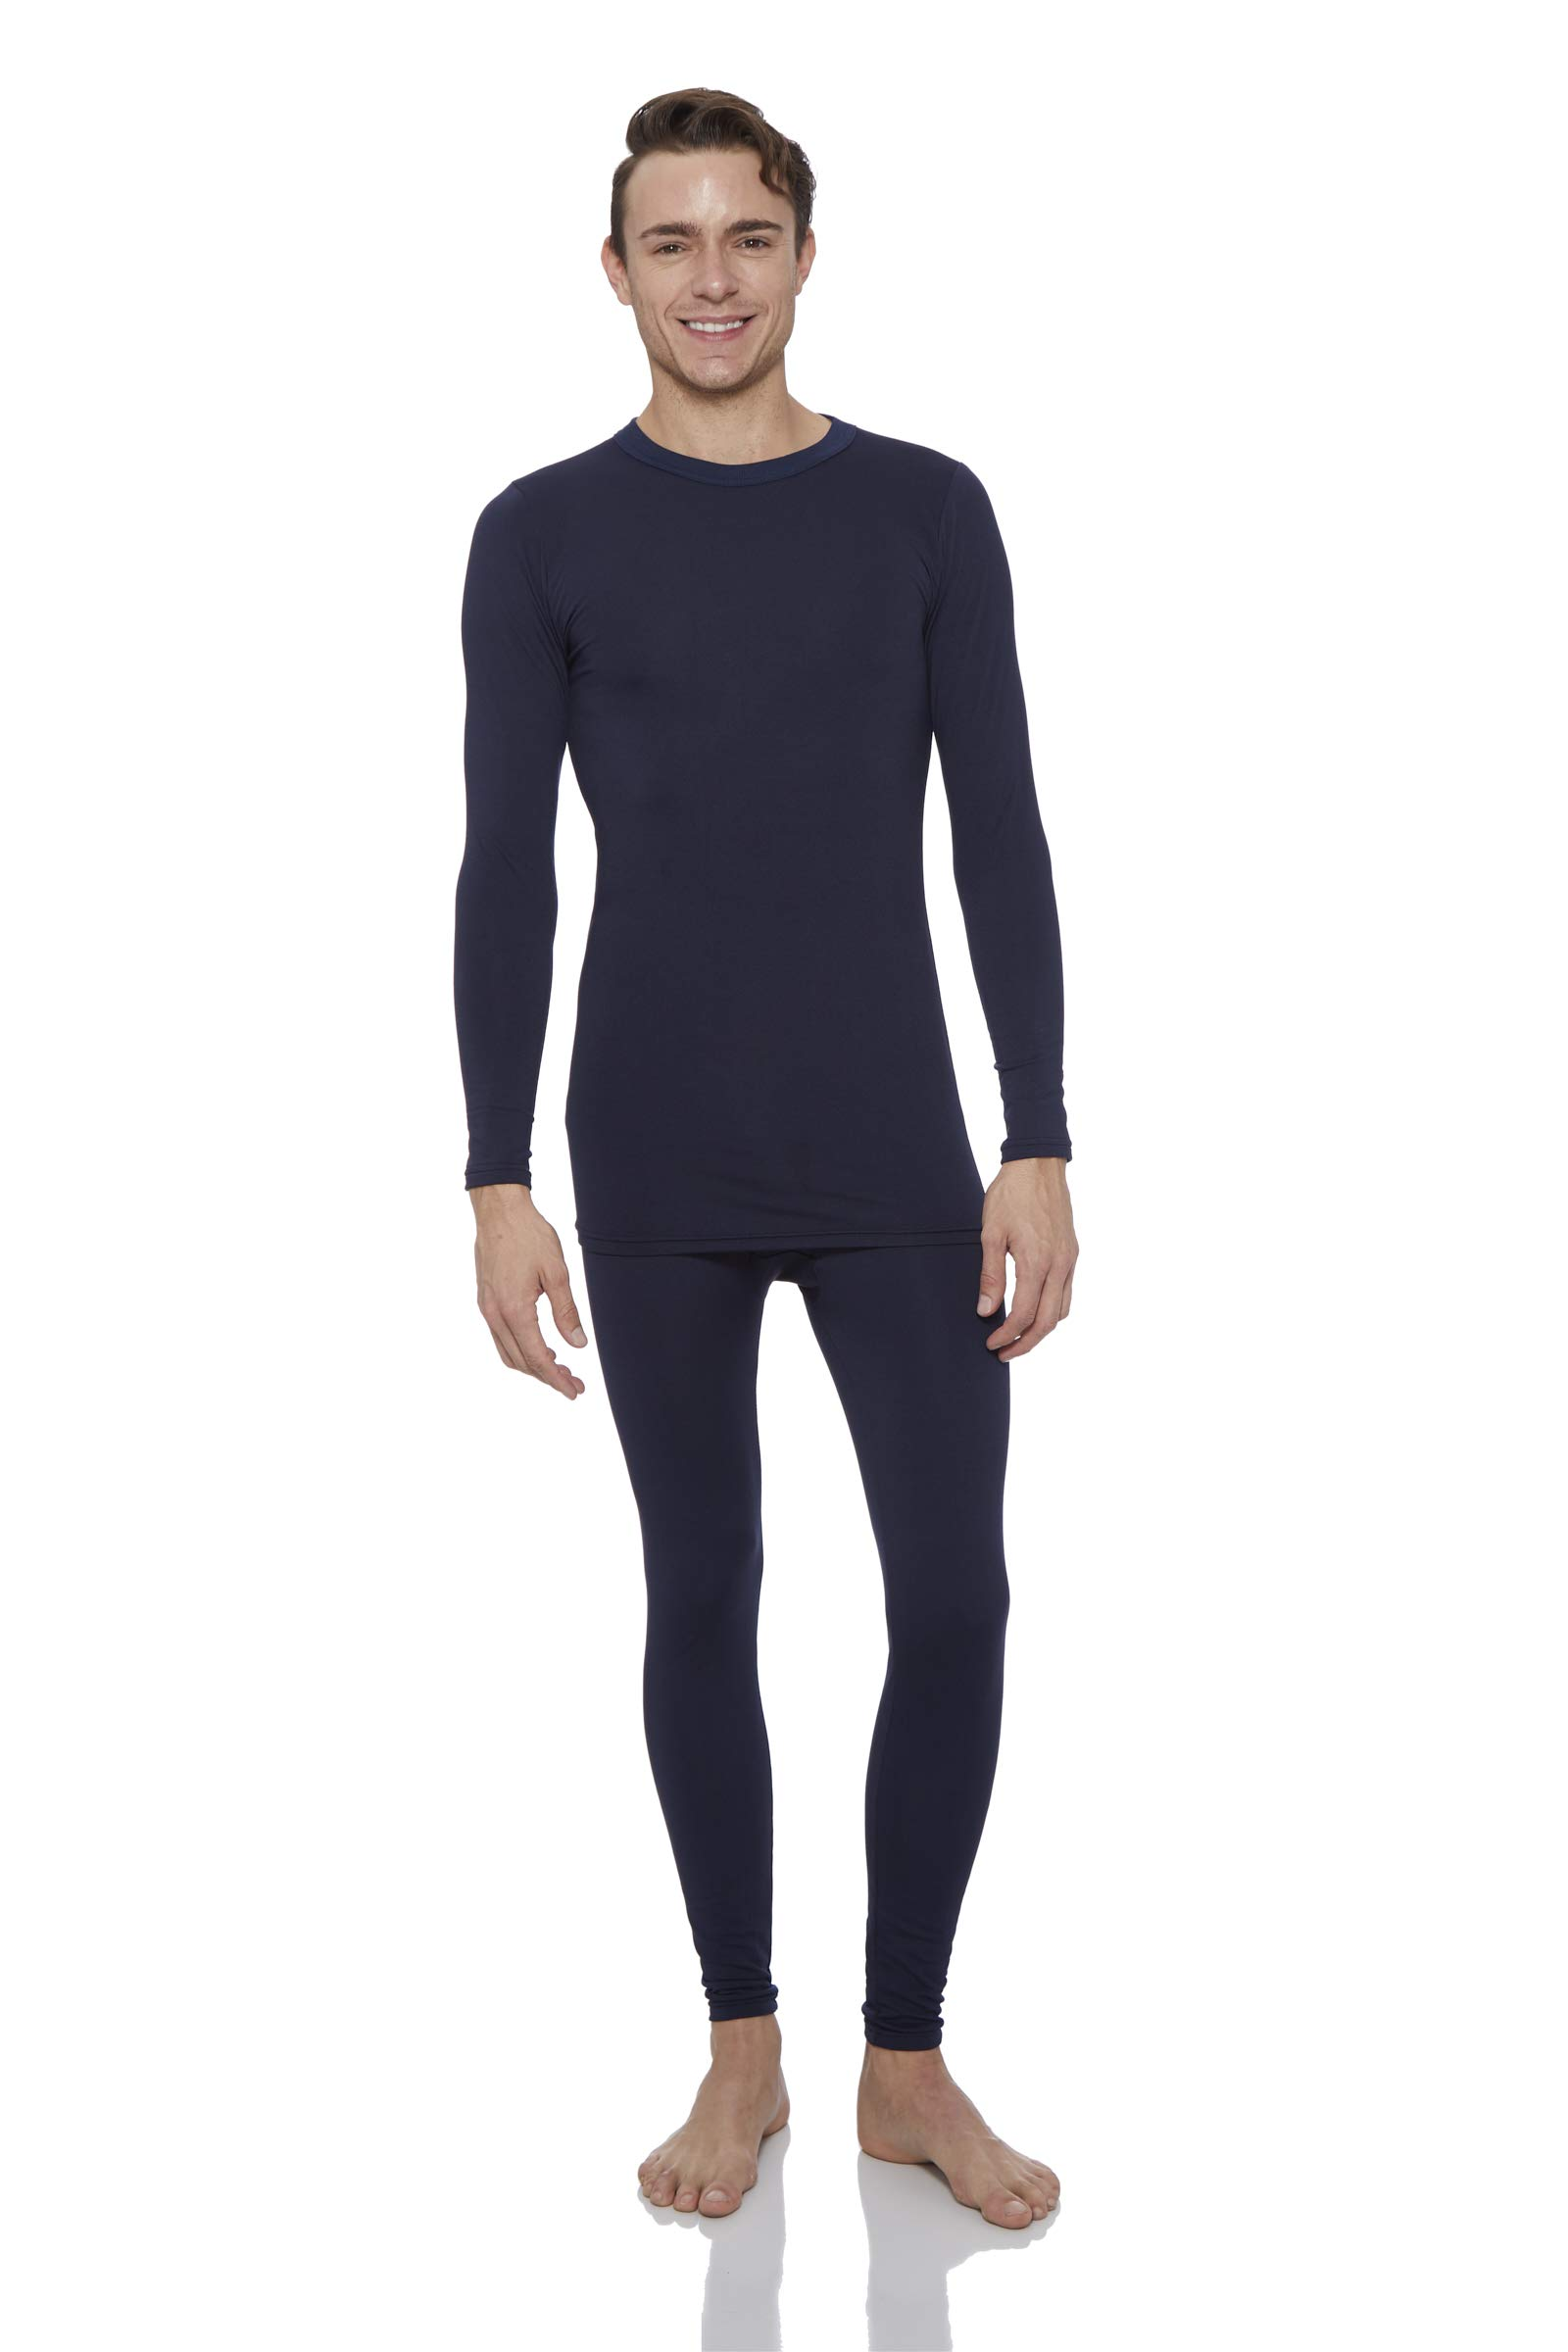 Rocky Thermal Underwear for Men Fleece Lined Thermals Men's Base Layer Long John Set Navy by Rocky